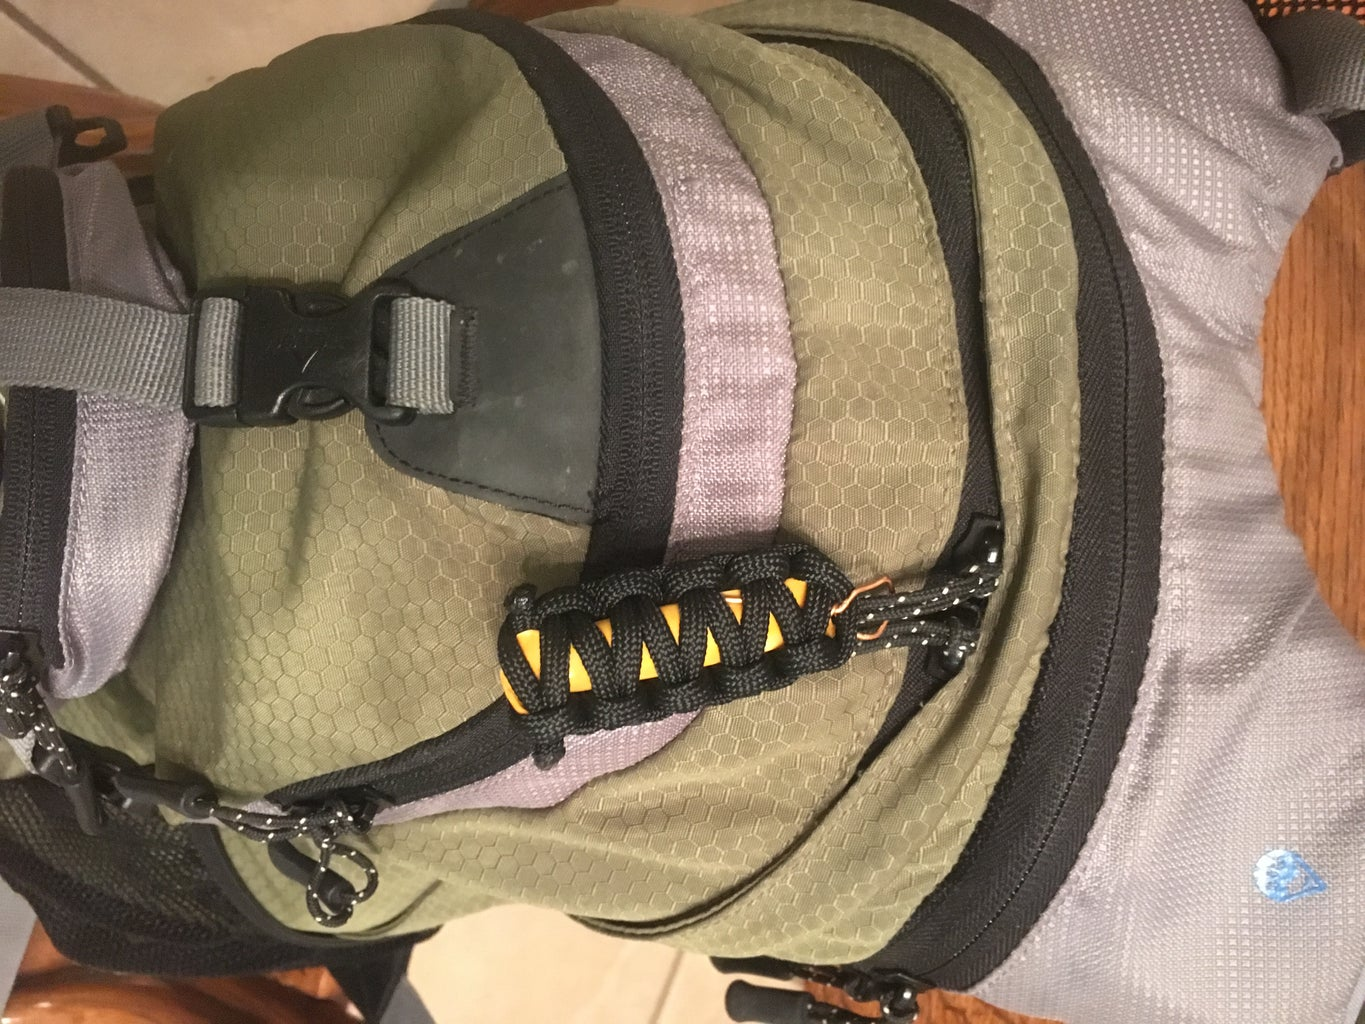 DIY Survival Zipper Pull for Your Backpack